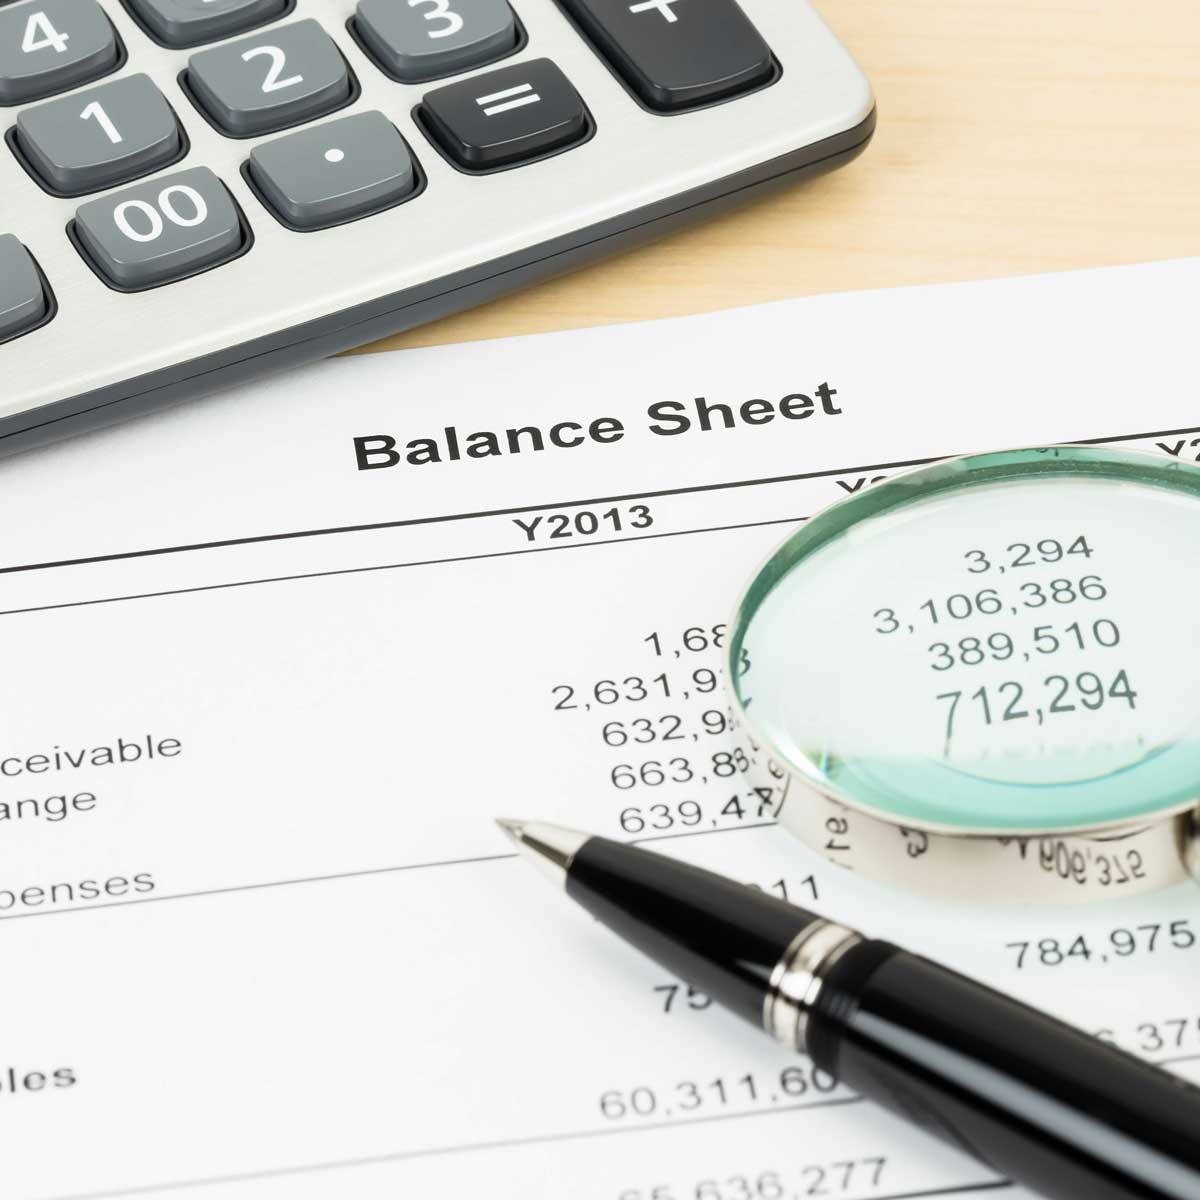 Balance sheet financial report with magnifier, pen, and calculator